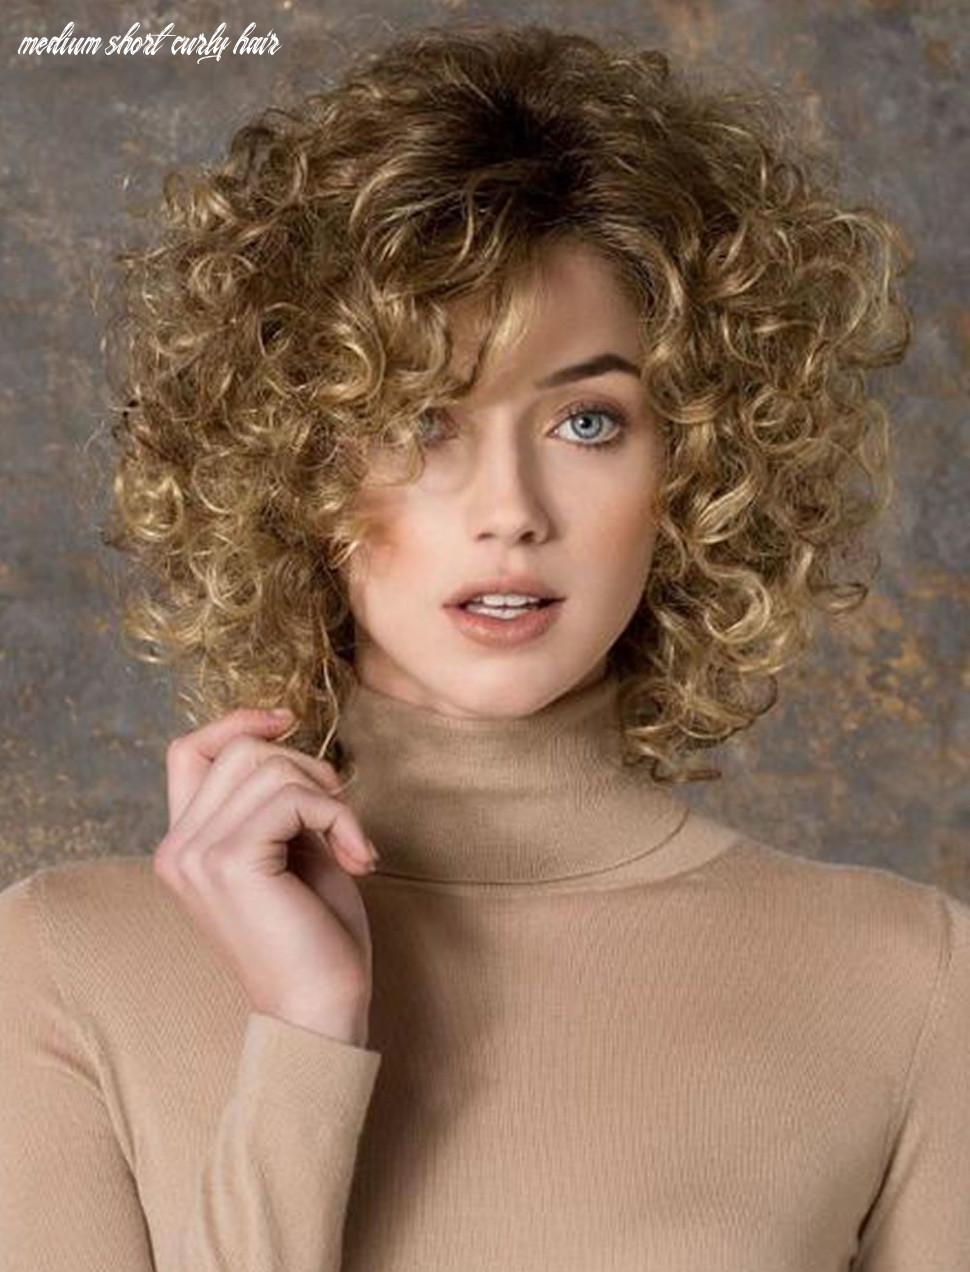 Best medium short curly hairstyles of 11 | thin curly hair